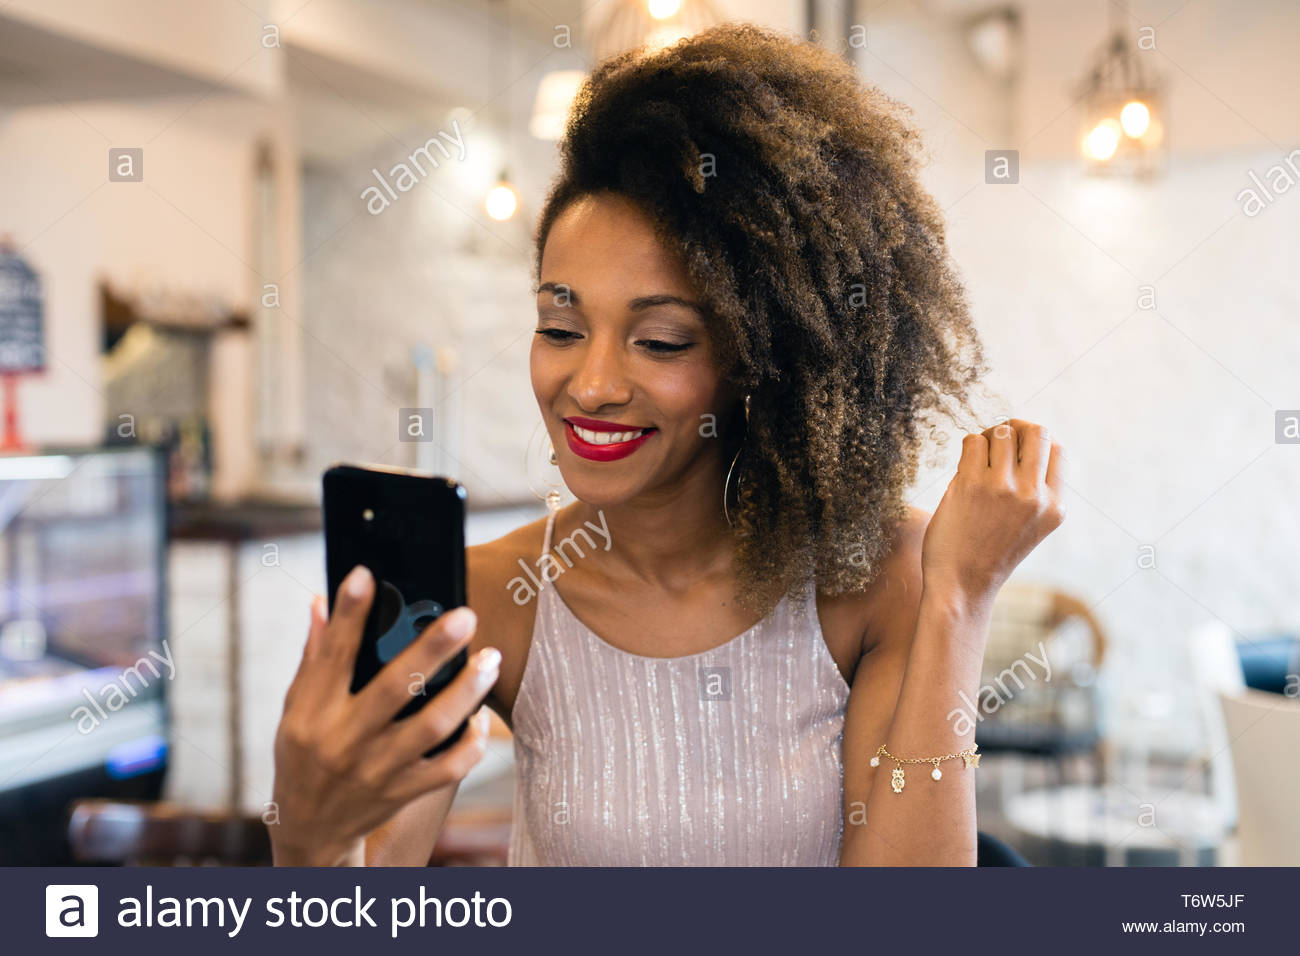 Stylish happy woman showing afro hairstyle taking a selfie photo with smartphone in a cafe bar . - Stock Image